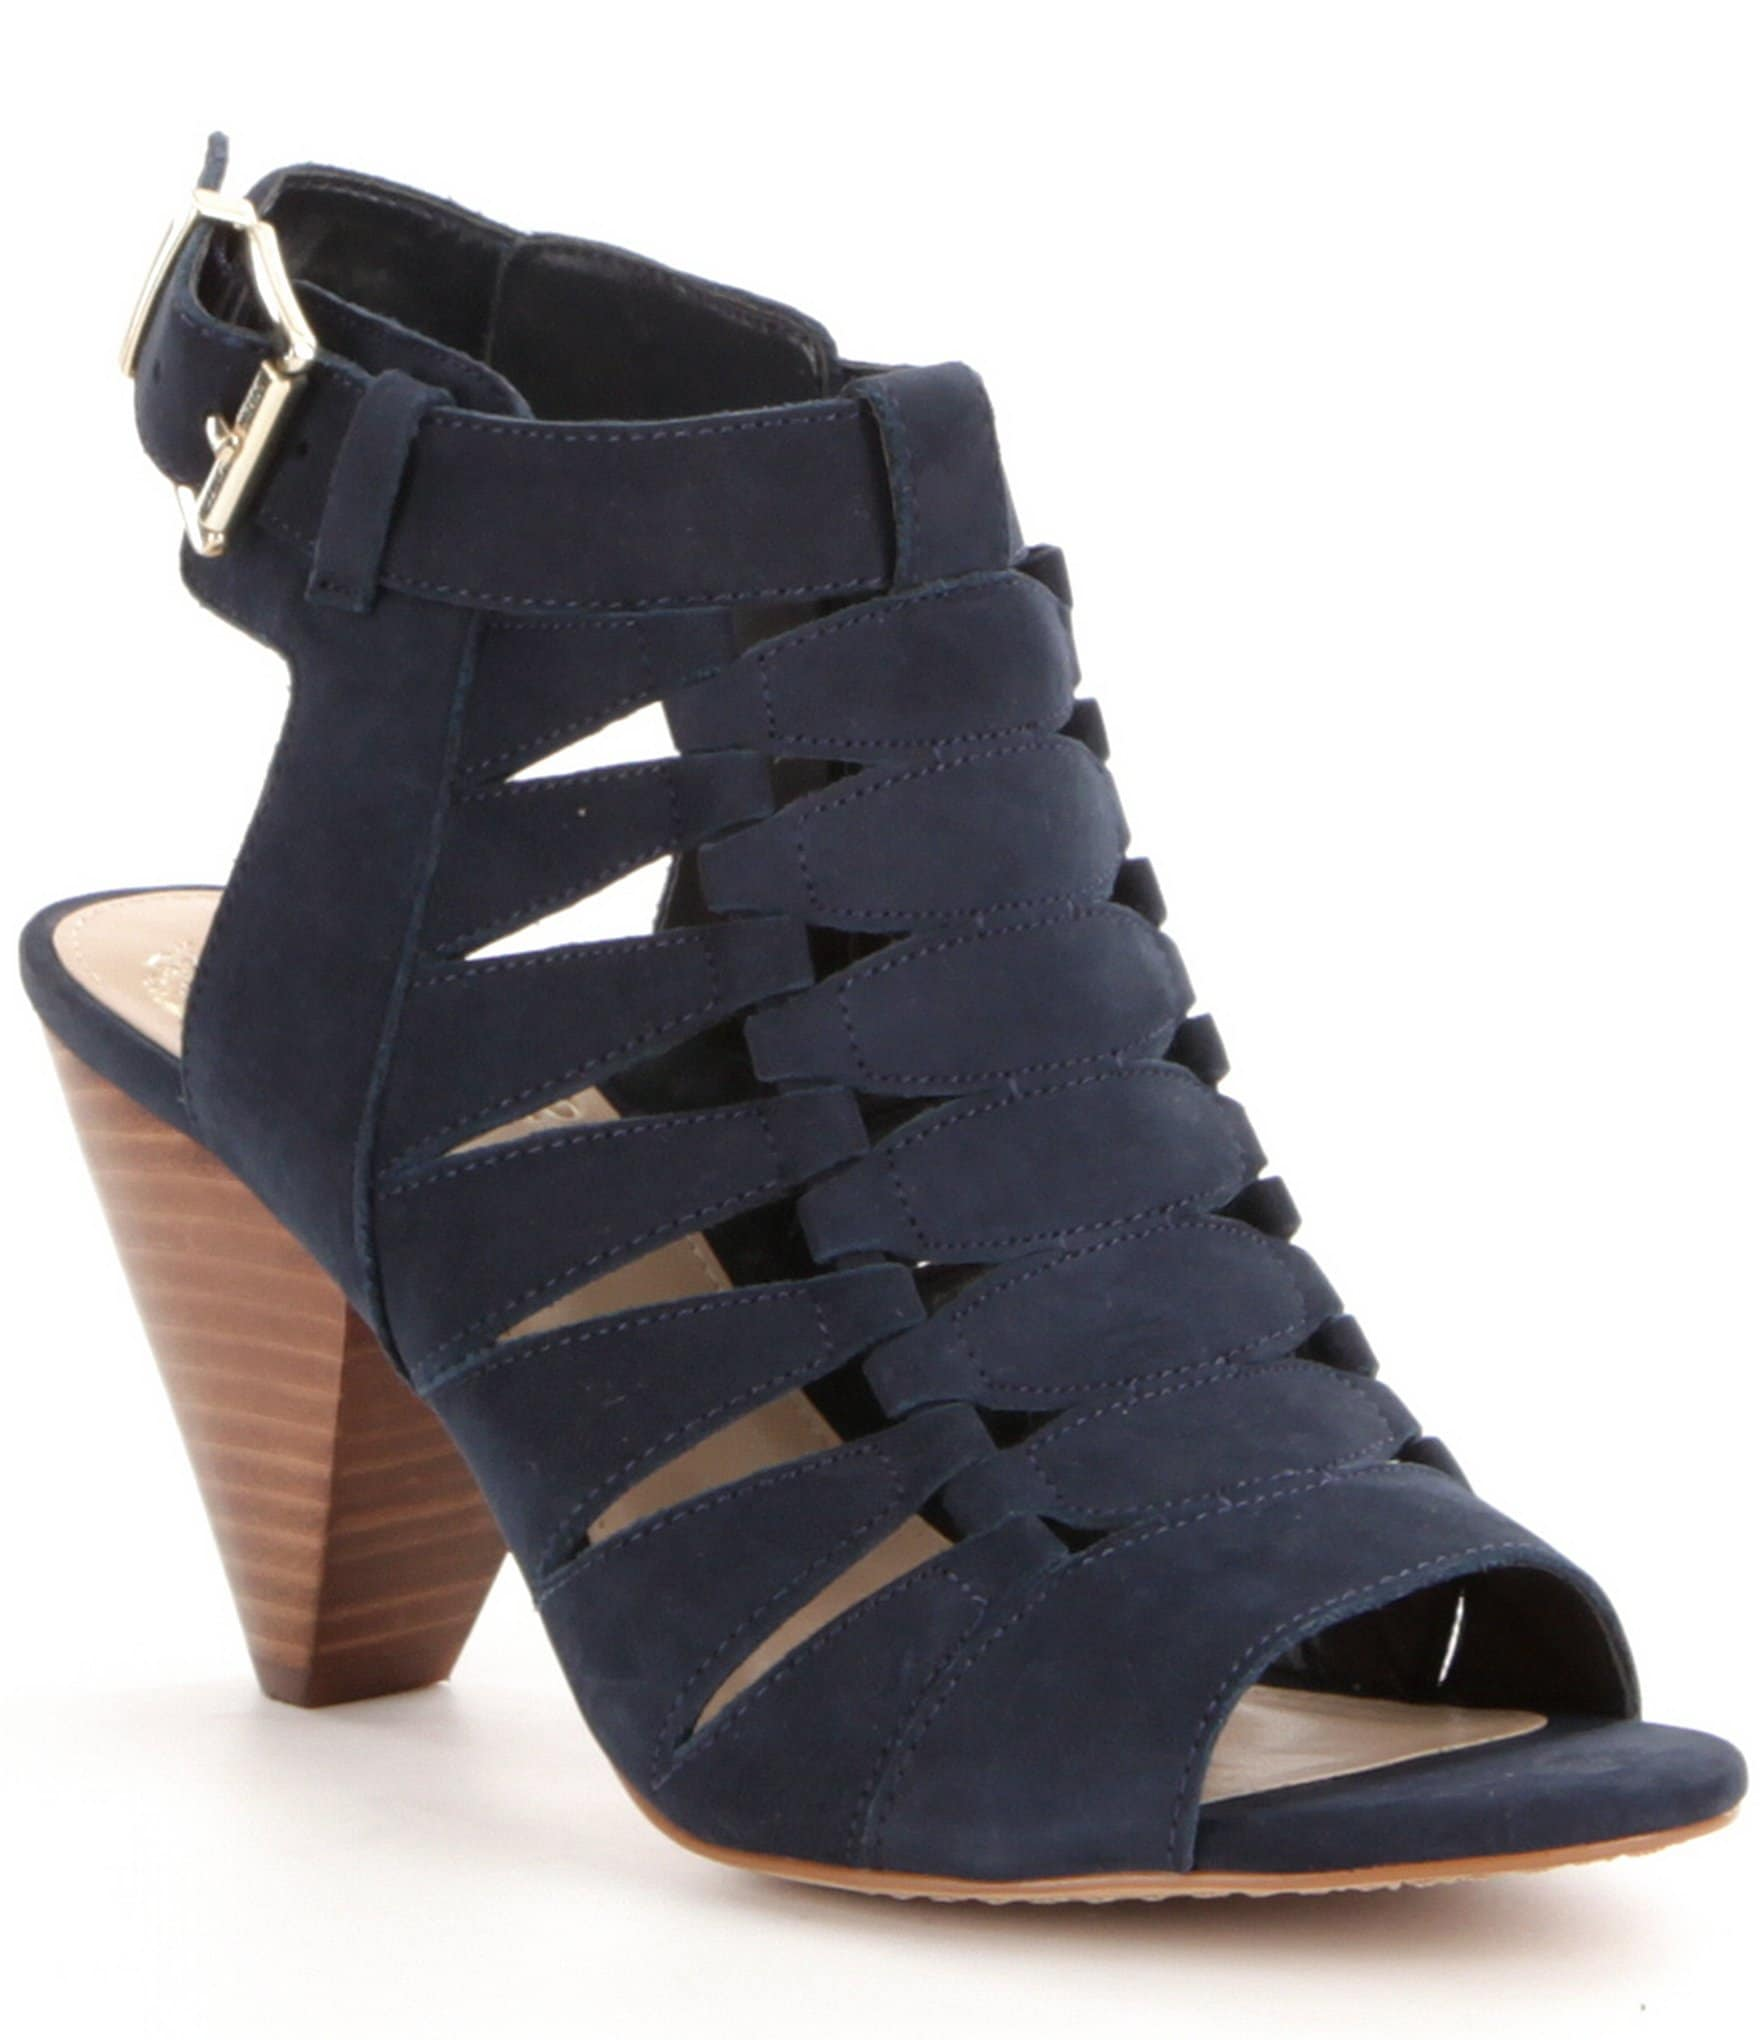 Womens sandals that zip up the back - Womens Sandals That Zip Up The Back 48